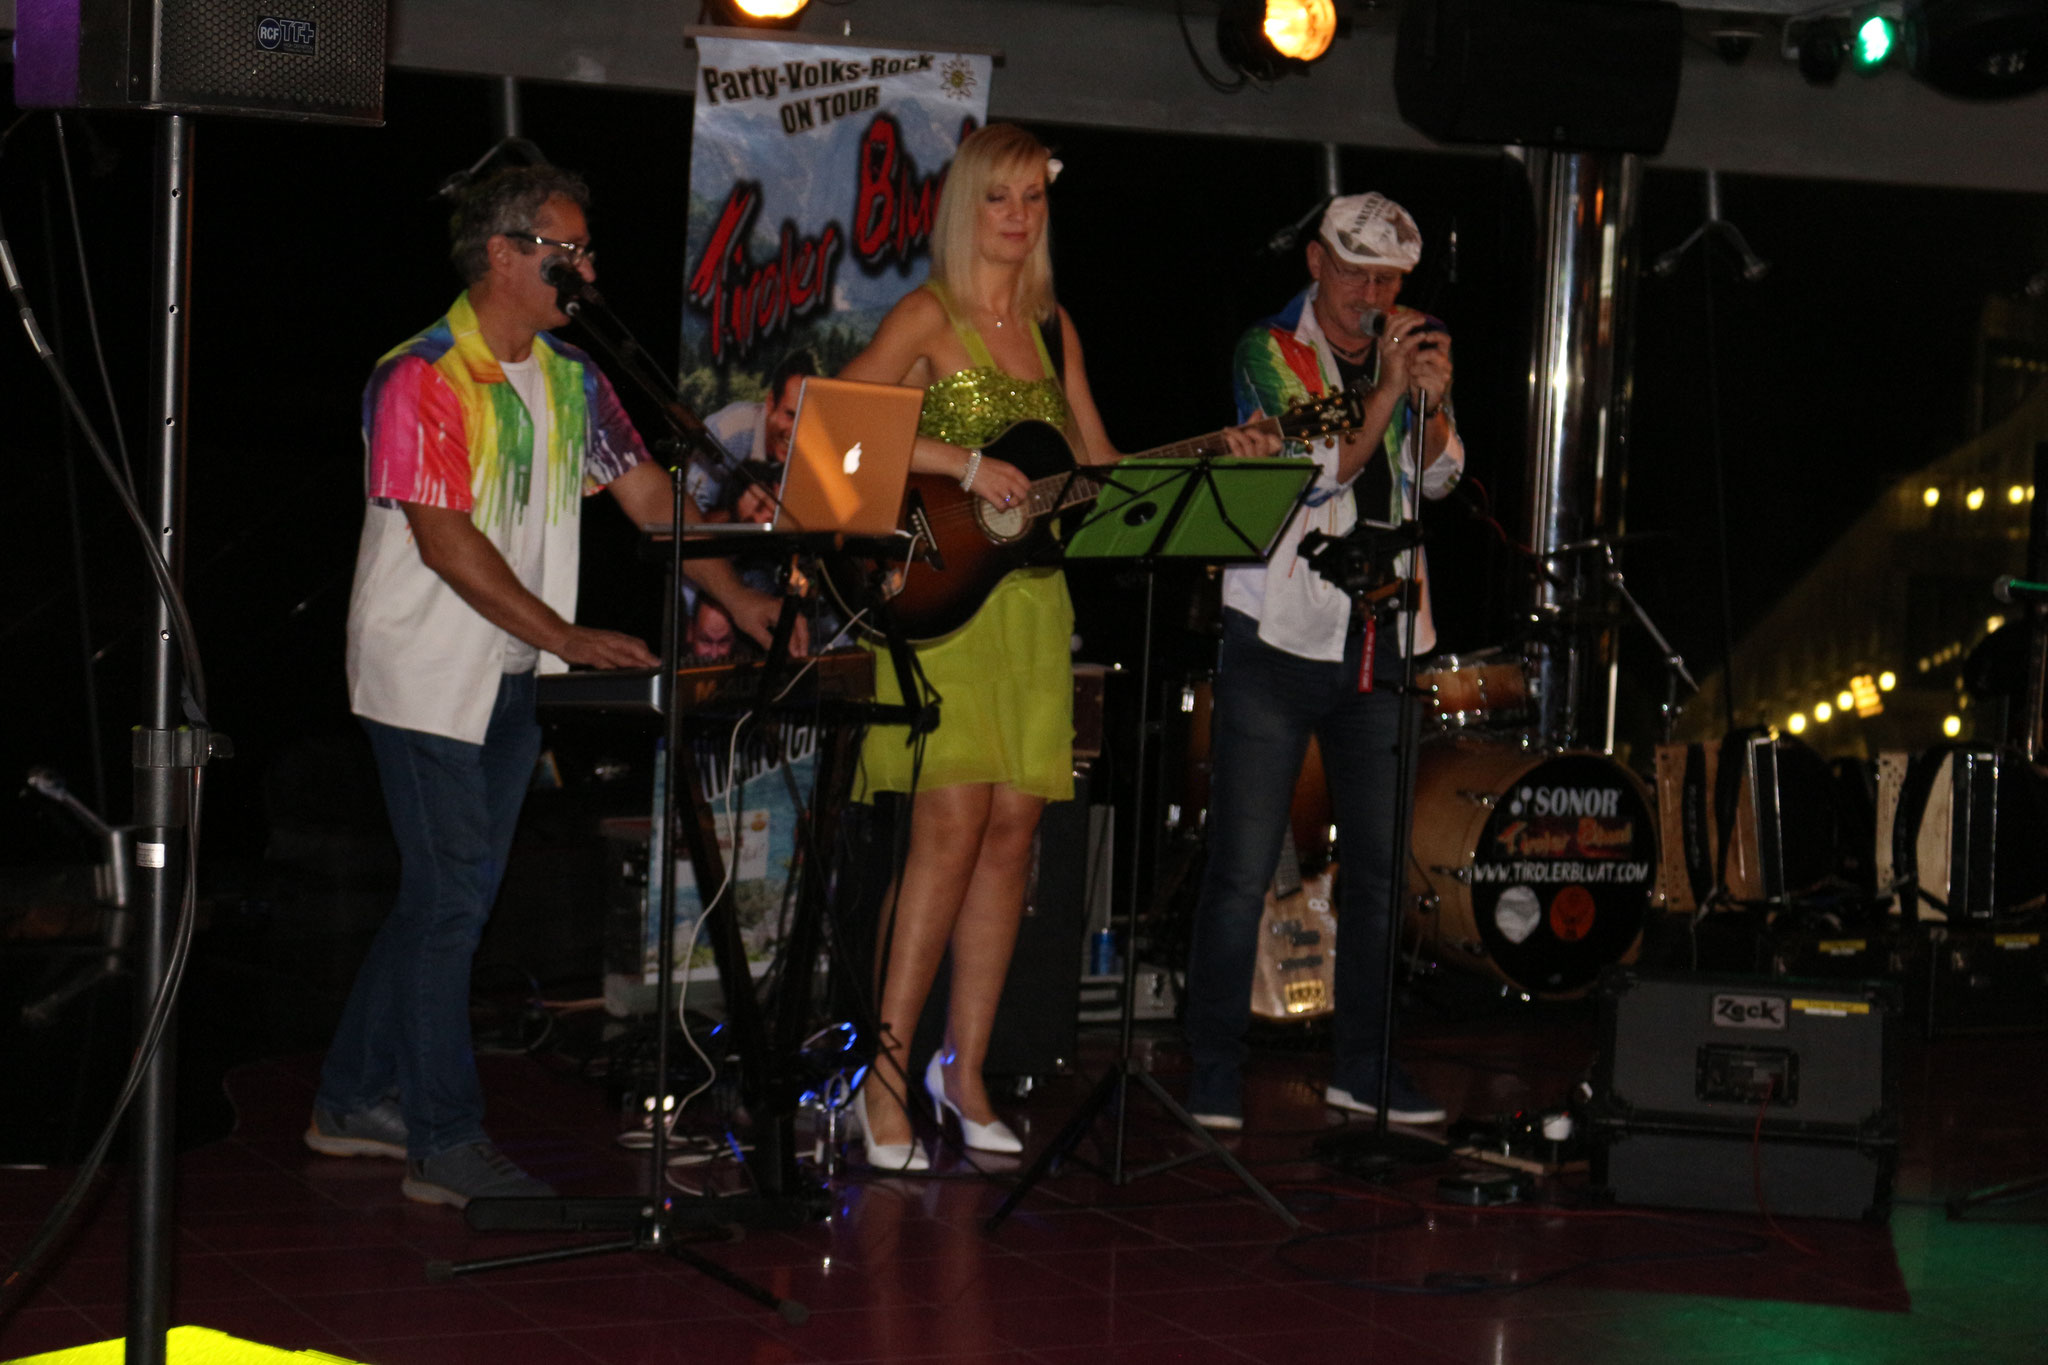 Galaband Fur Ihren Ball Band Up To Date Aus Munchen